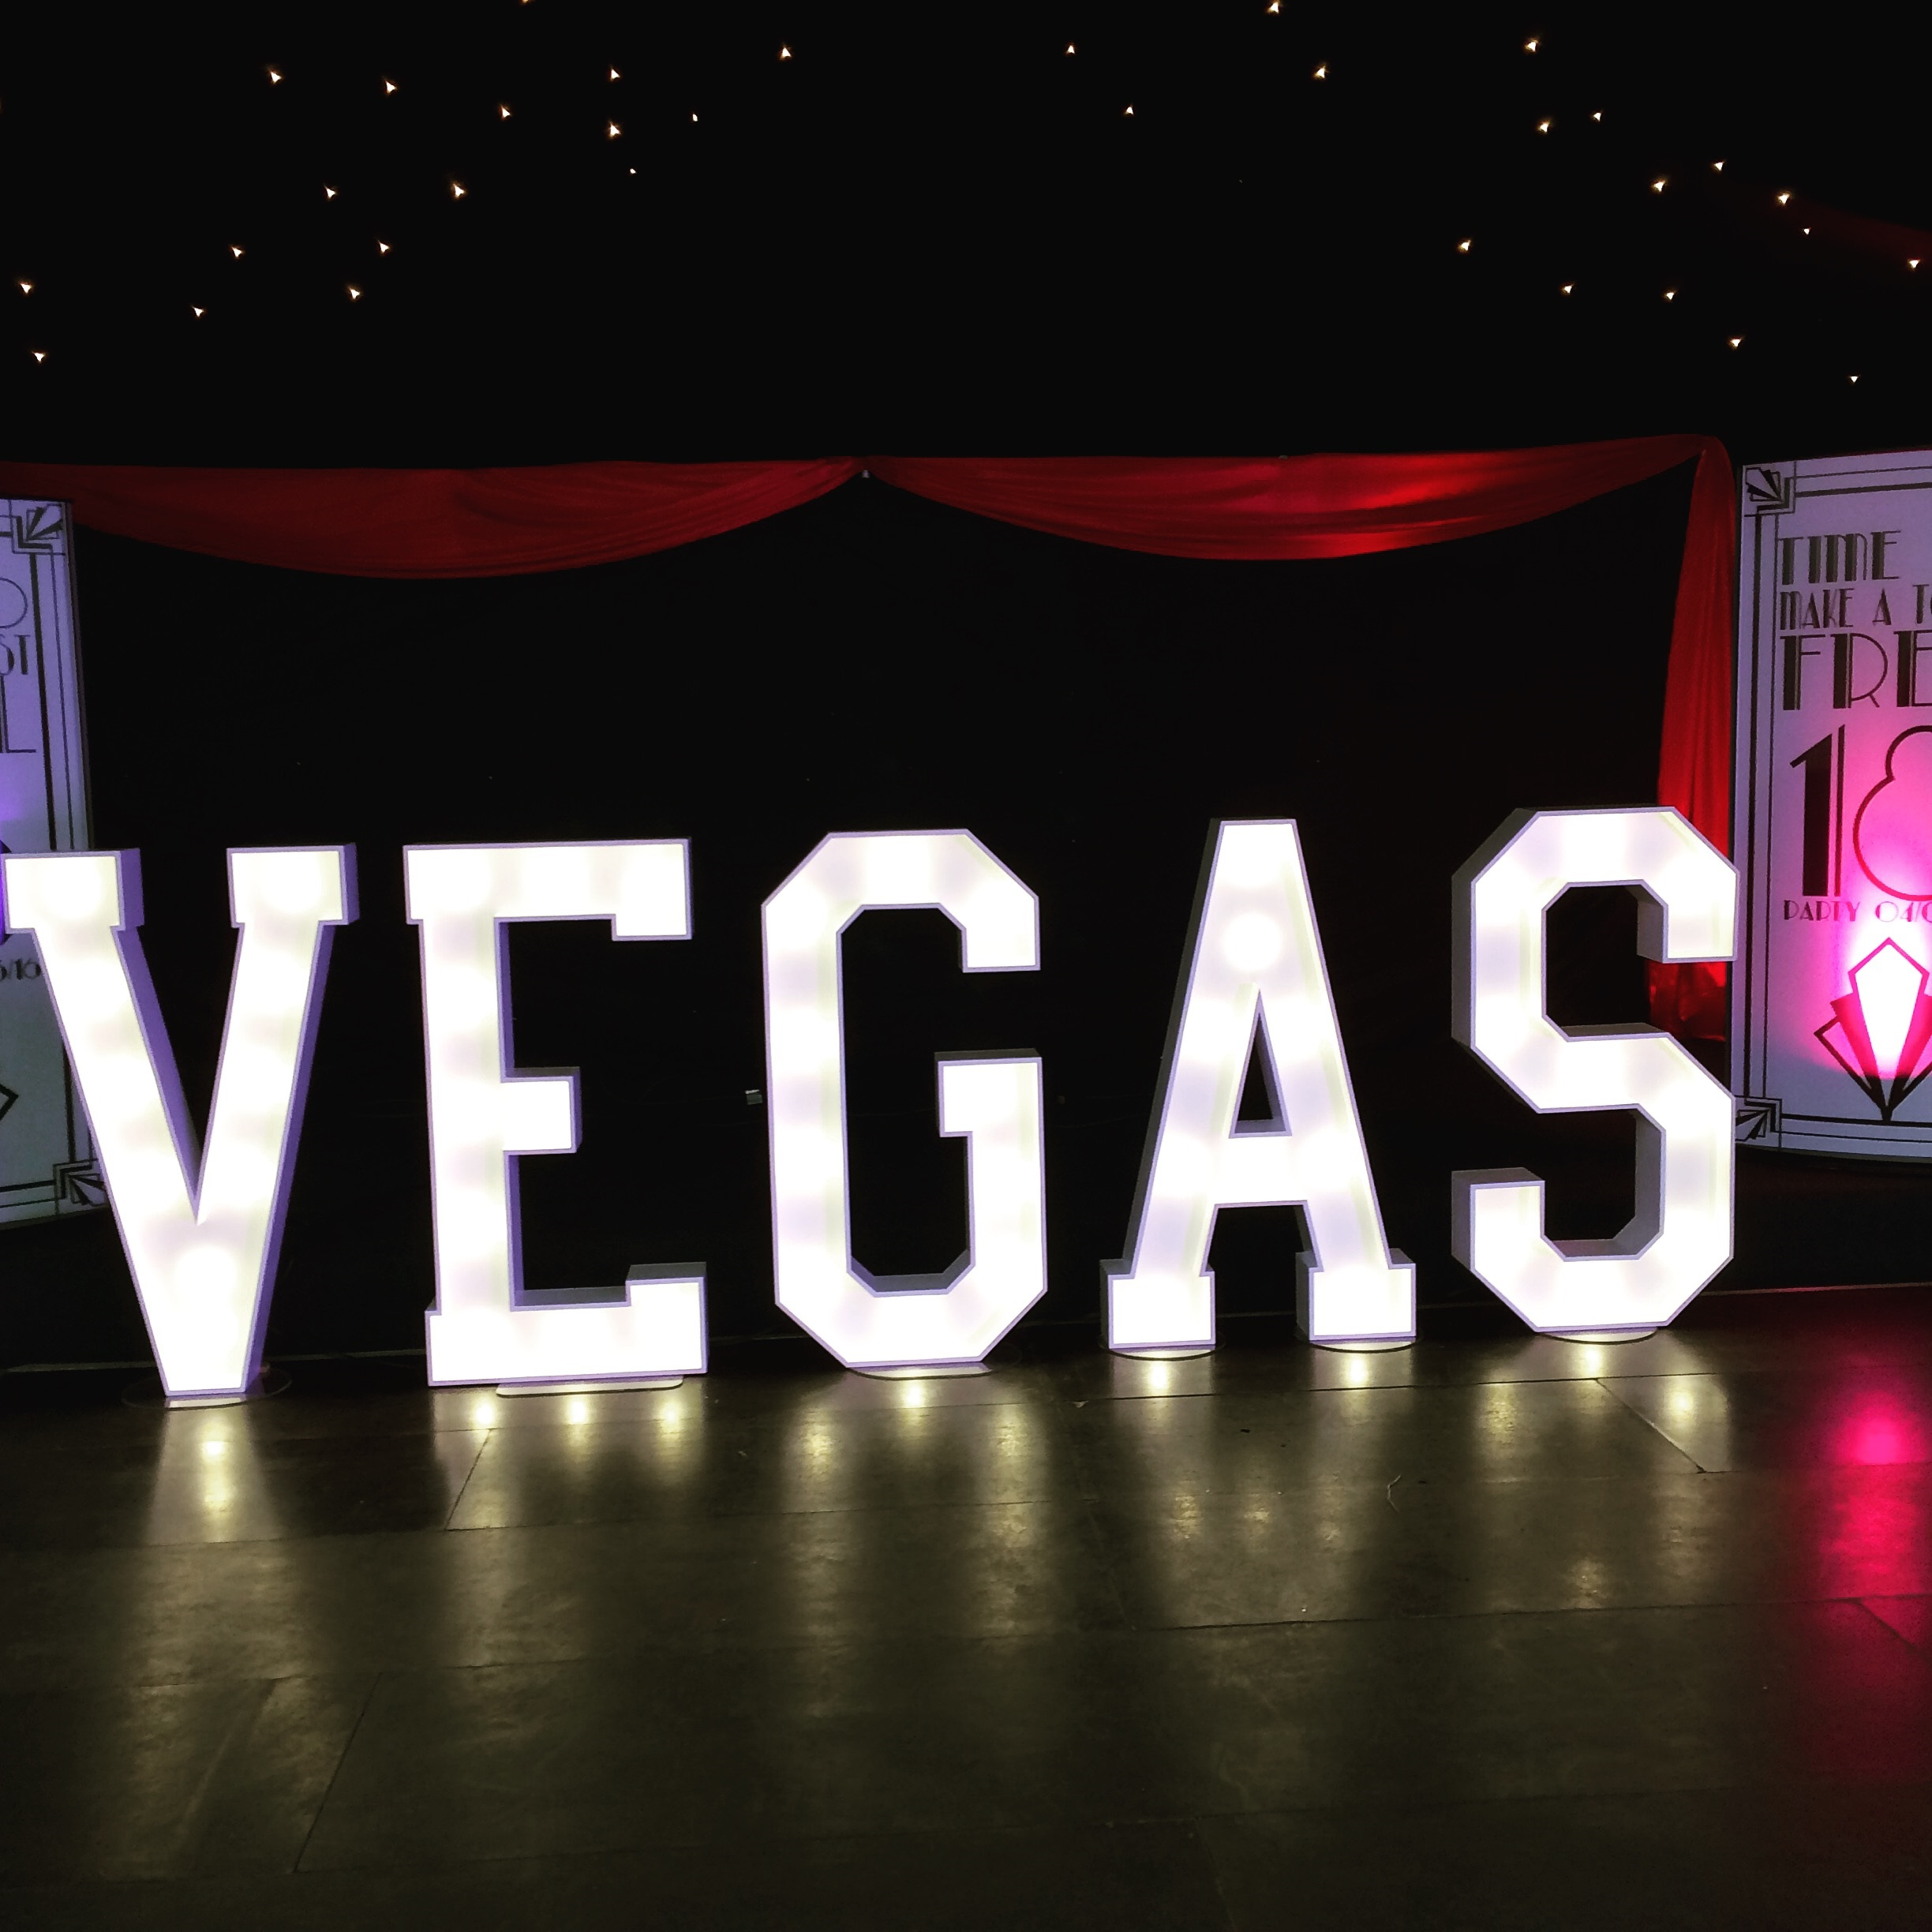 Vegas words to glow light up letters venue decor for Marry me light up letters